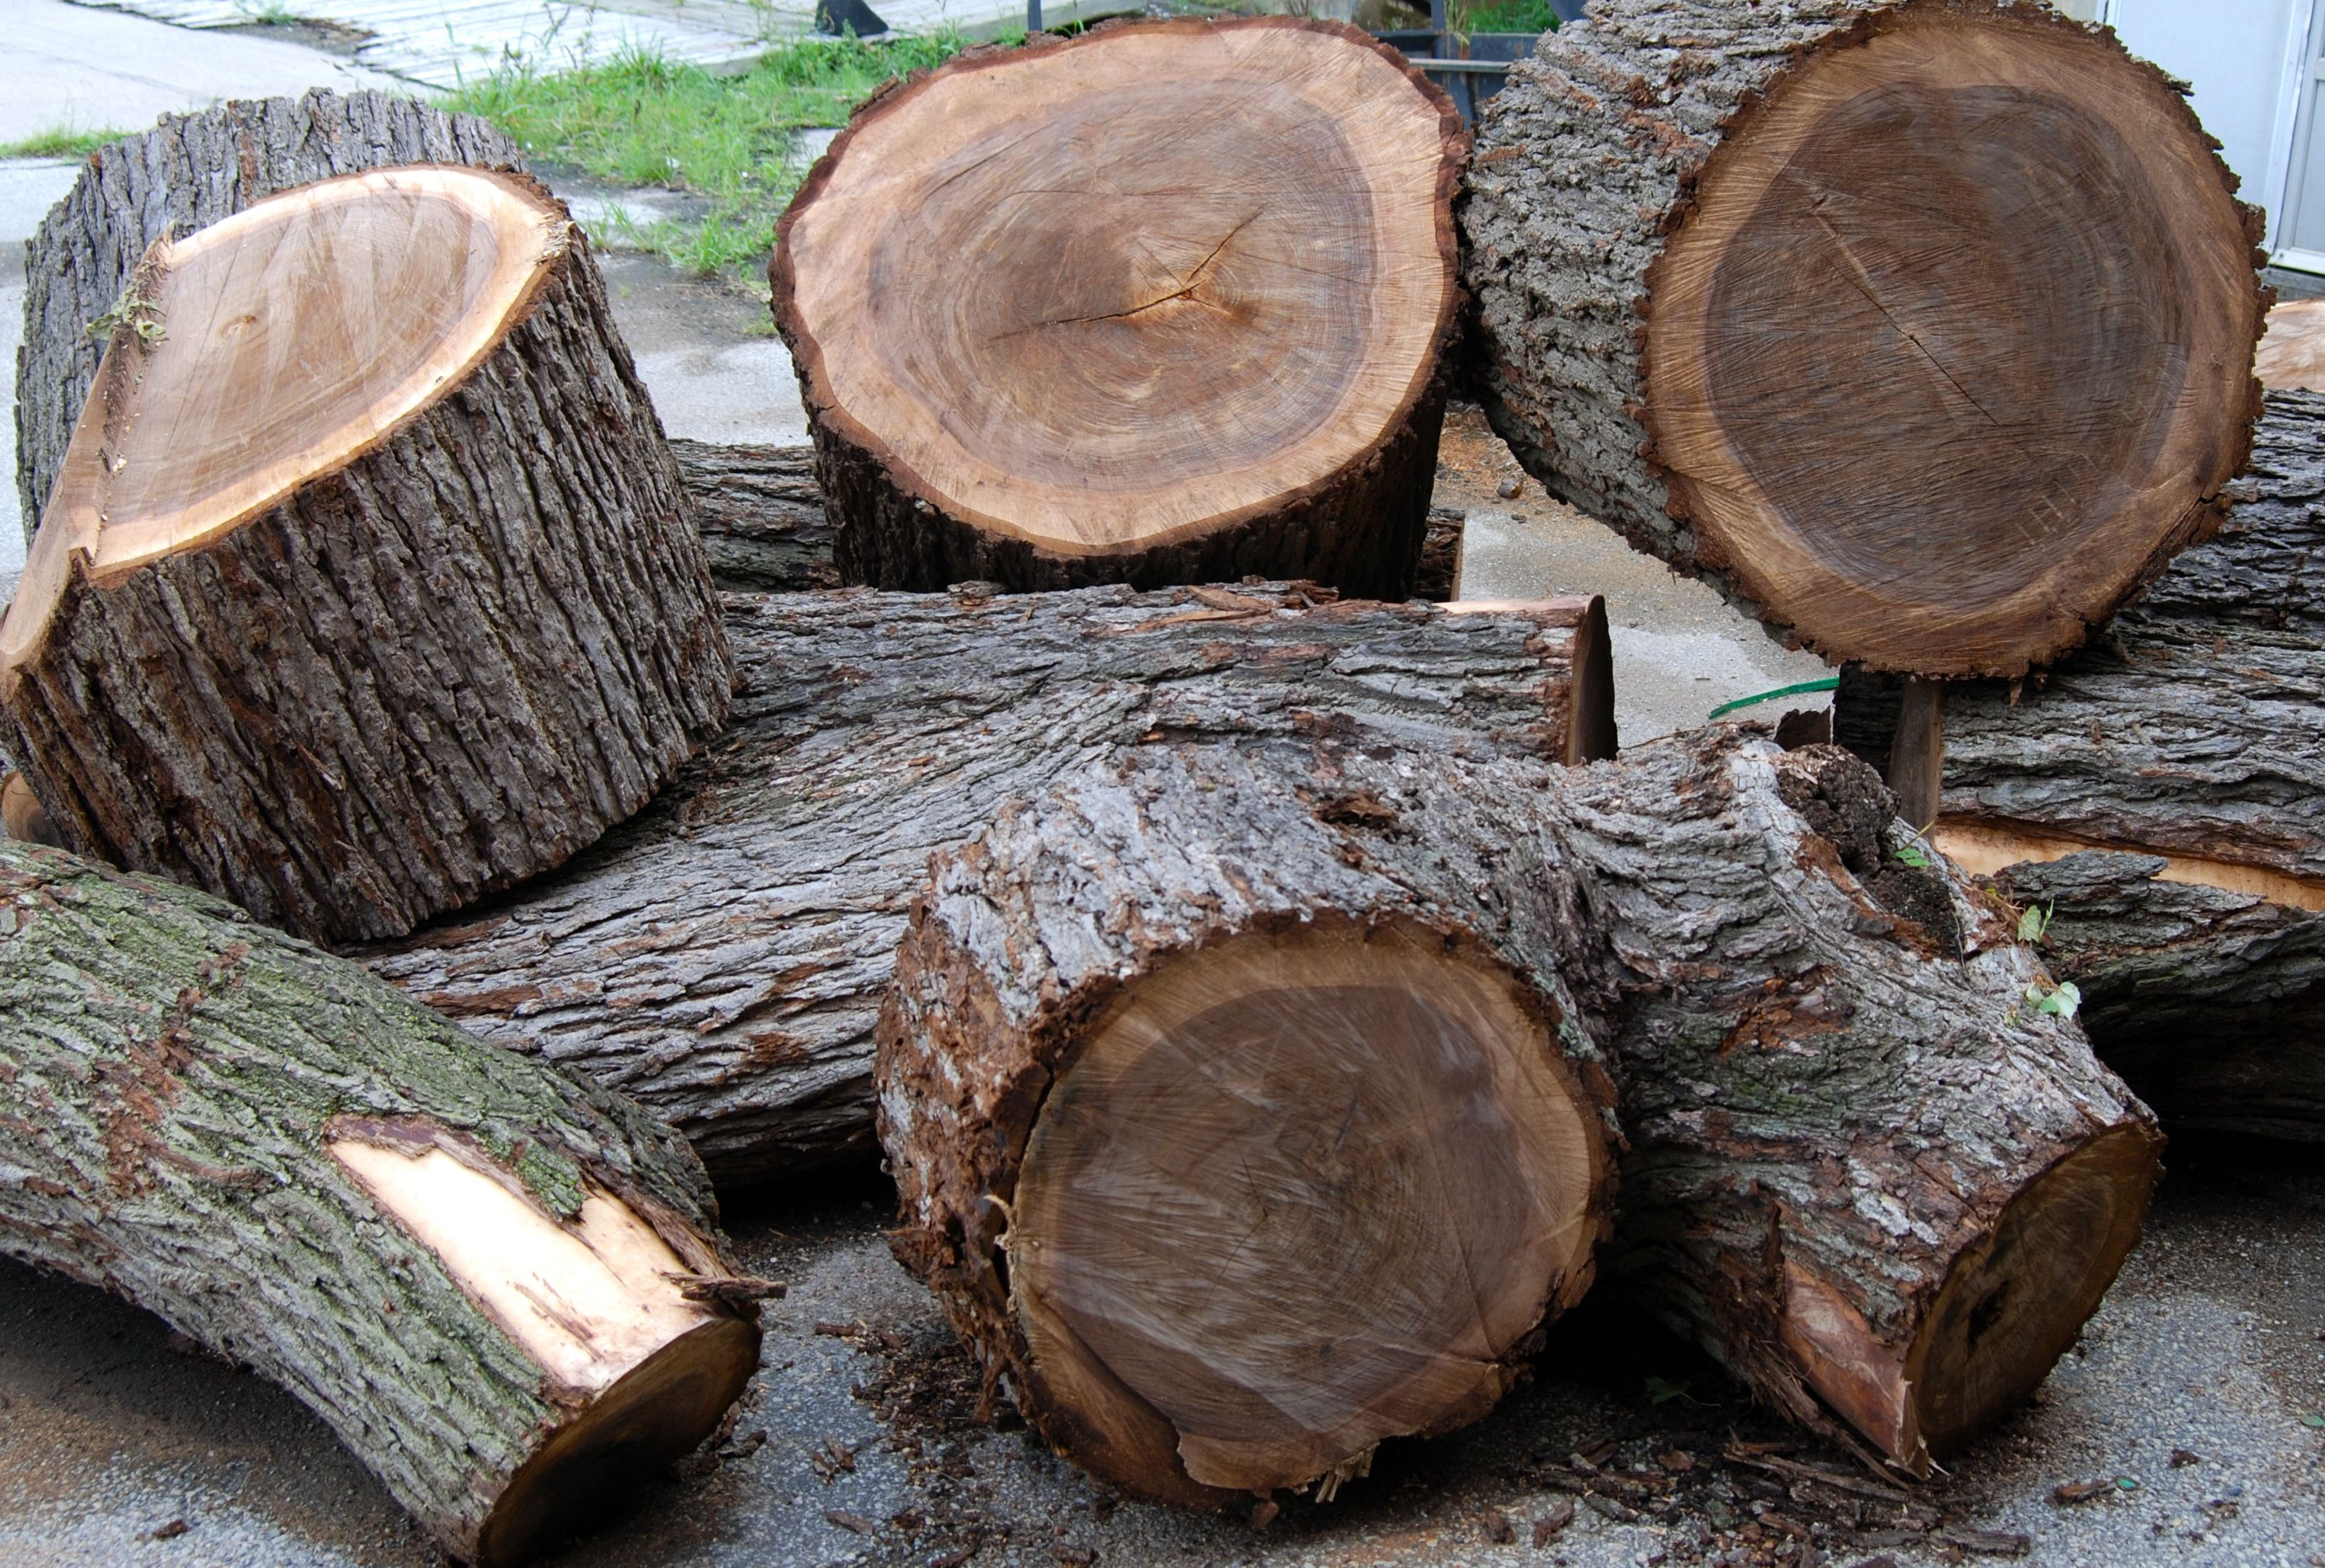 we feel lucky to have obtained this wood due to the shortage of recycled black walnut trees in our city black walnut tree trunk